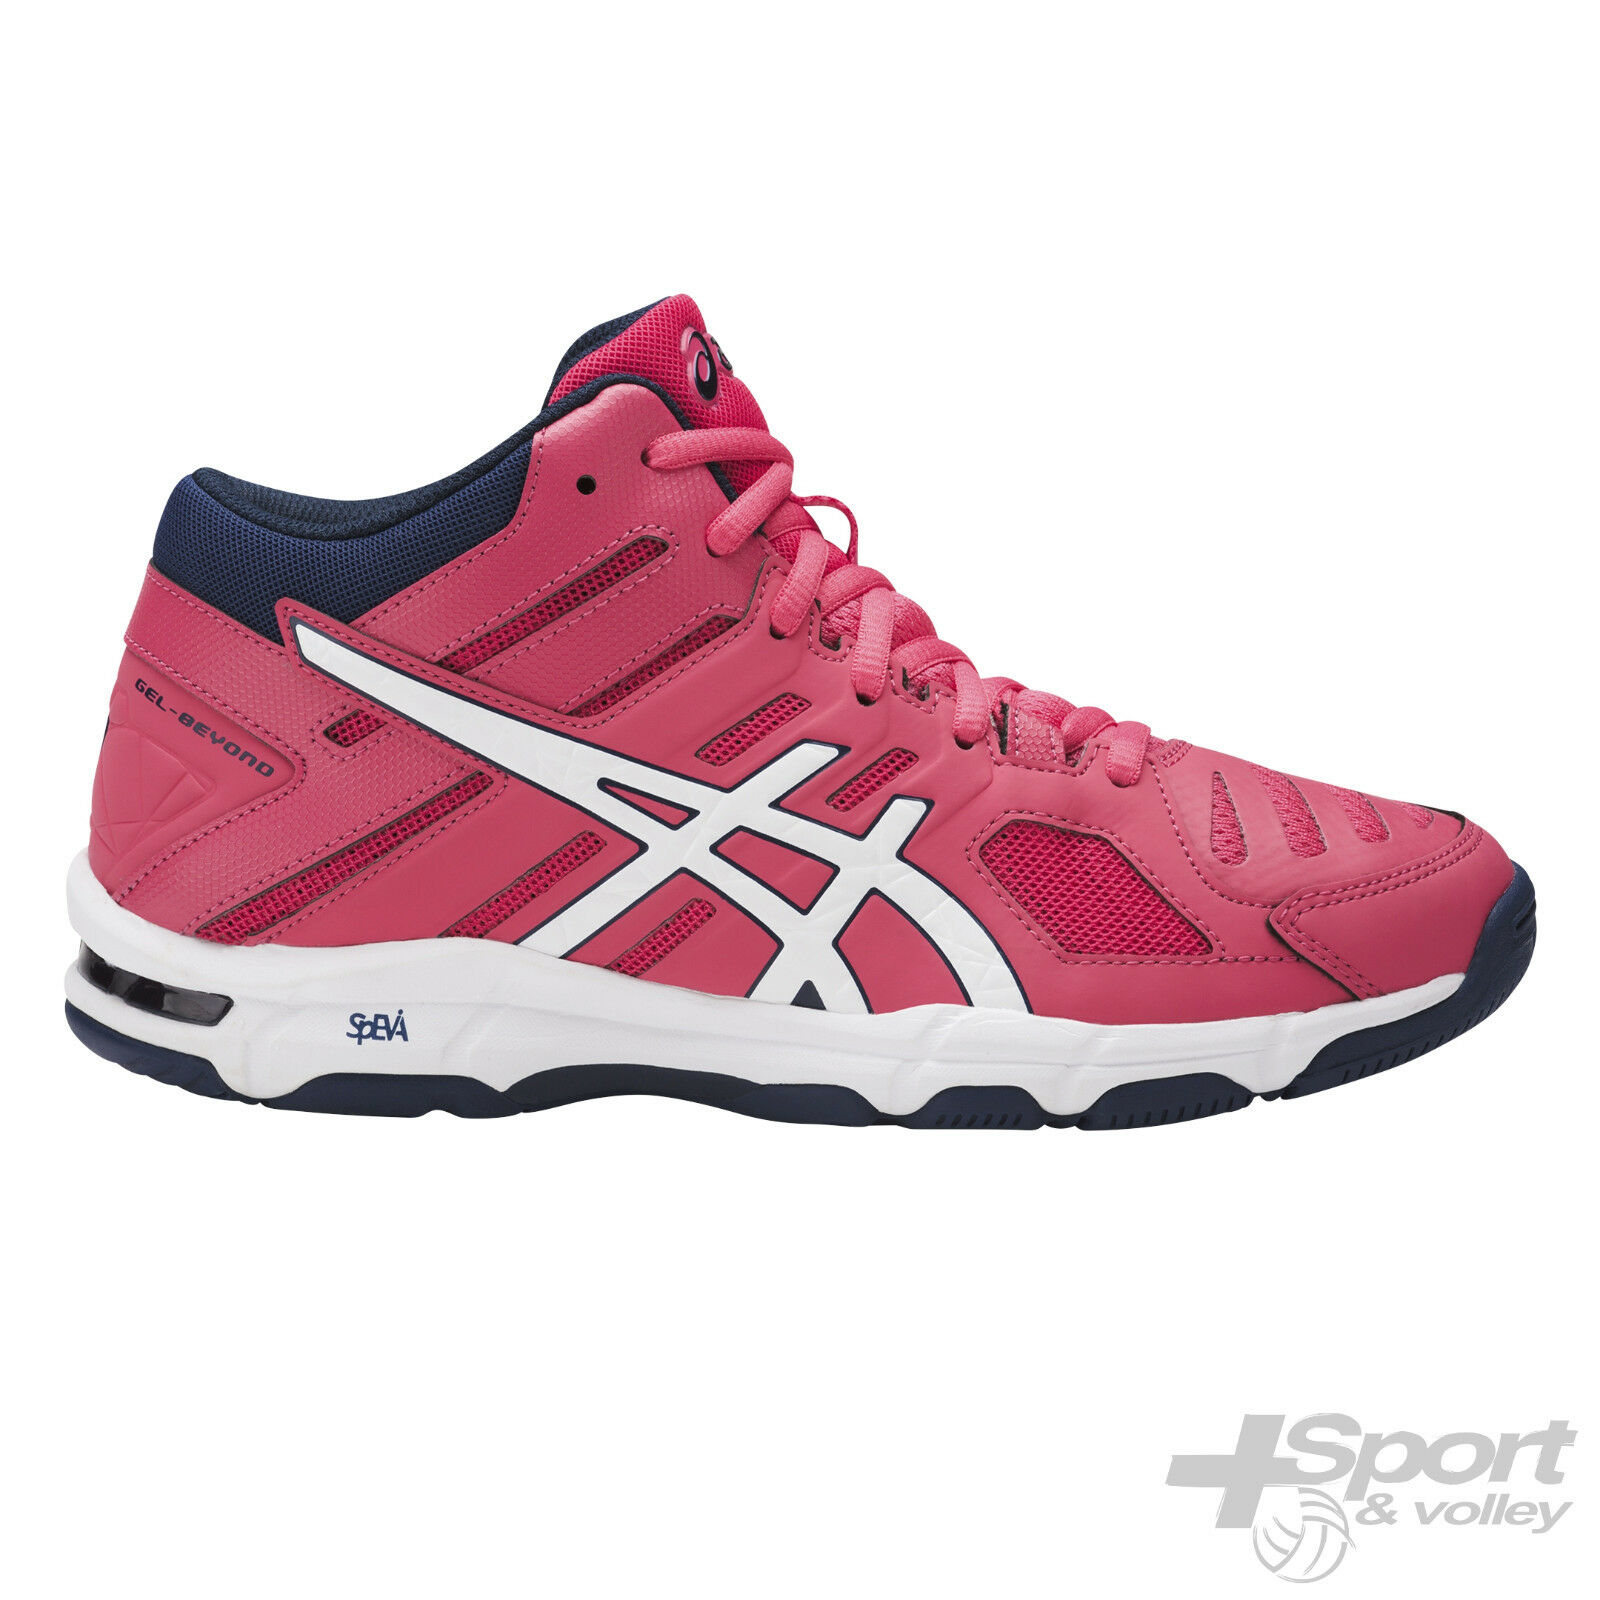 Chaussure volleyball Asics Gel Beyond 5 Mid Woman B650N 1901